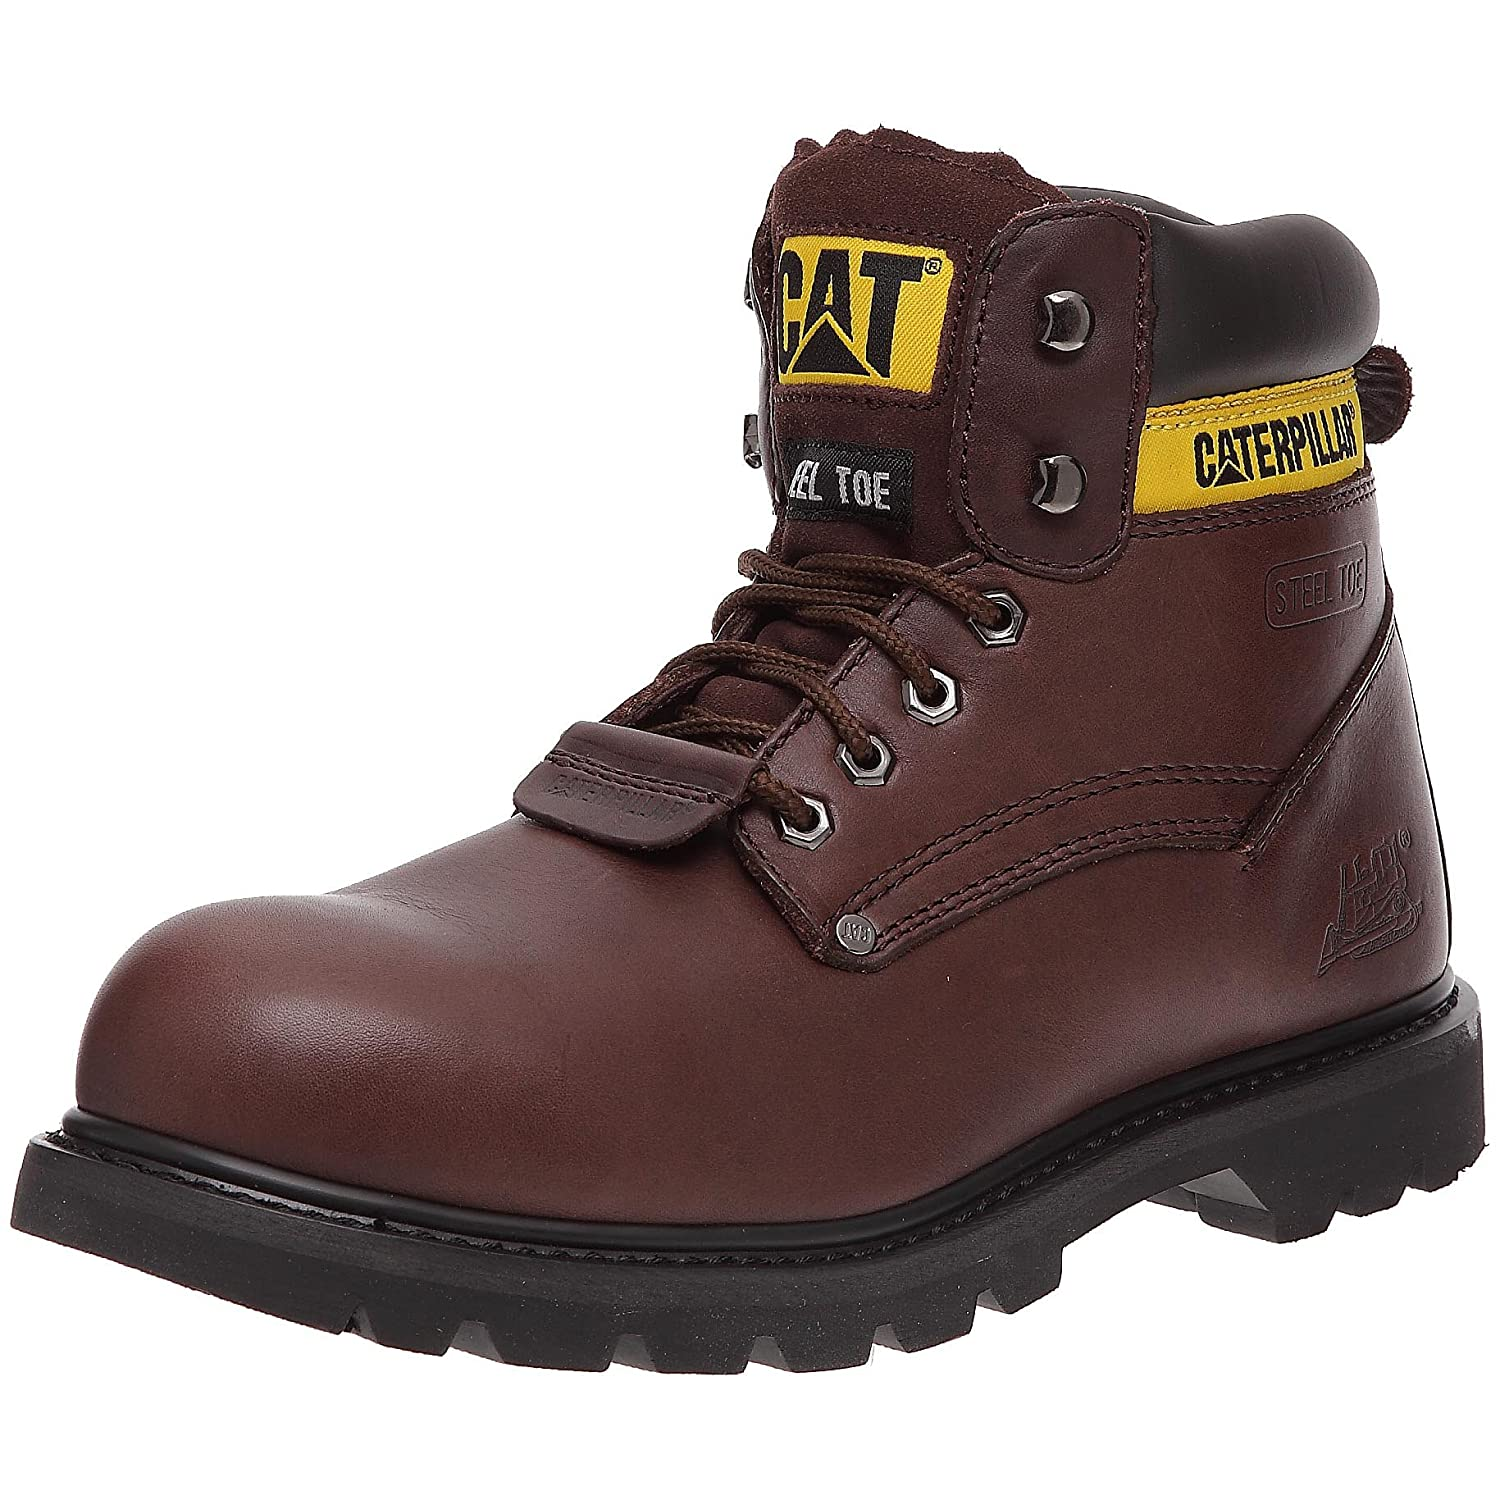 CAT Footwear Sheffield, Men's Safety Boots Men's Safety Boots Wc94078709